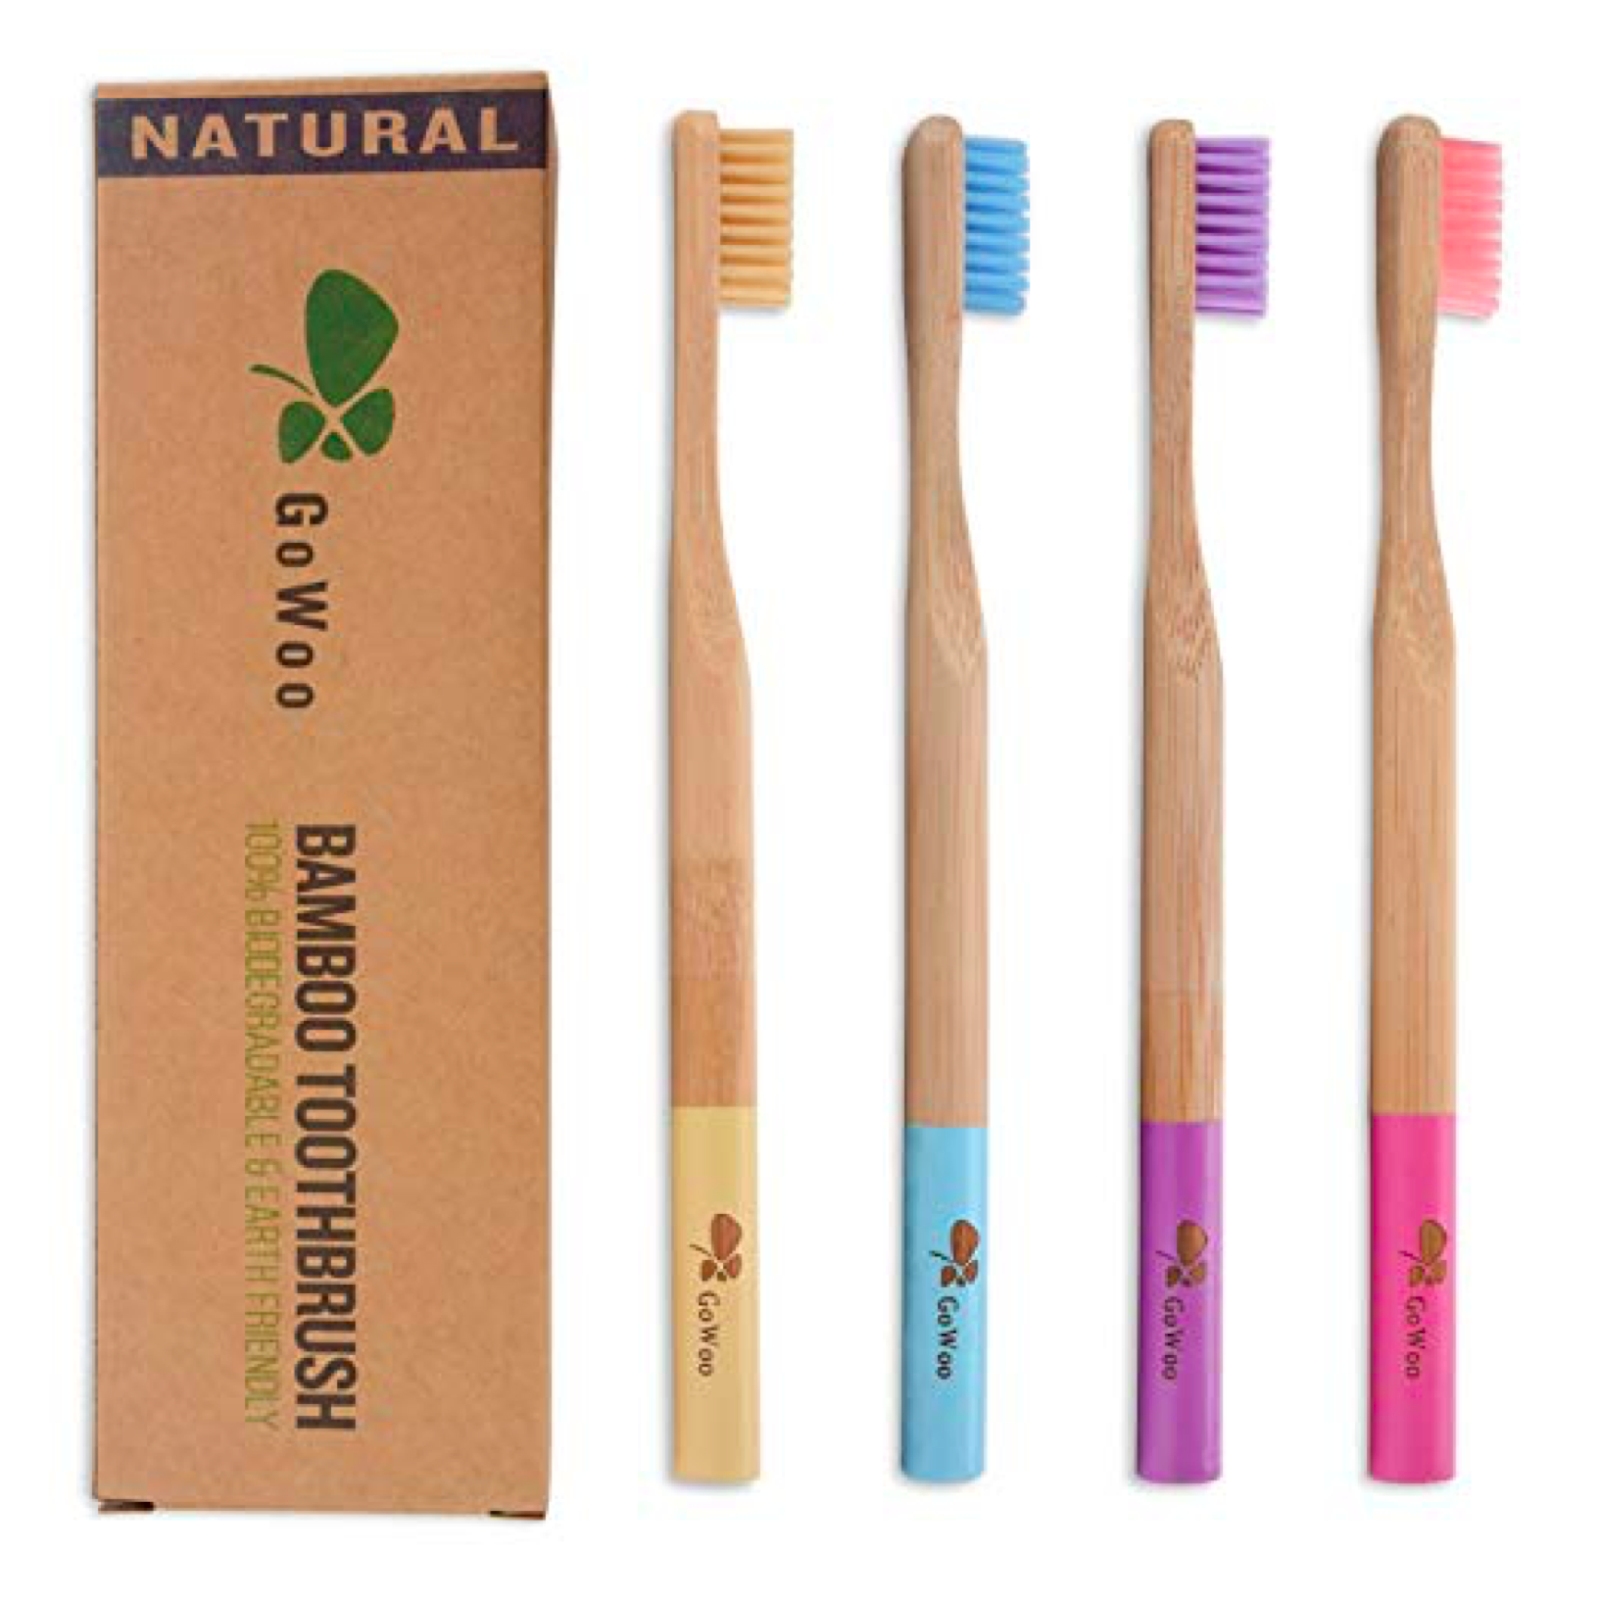 GoWoo Bamboo Toothbrush.  Small cardboard box with logo next to four bamboo toothbrushes.